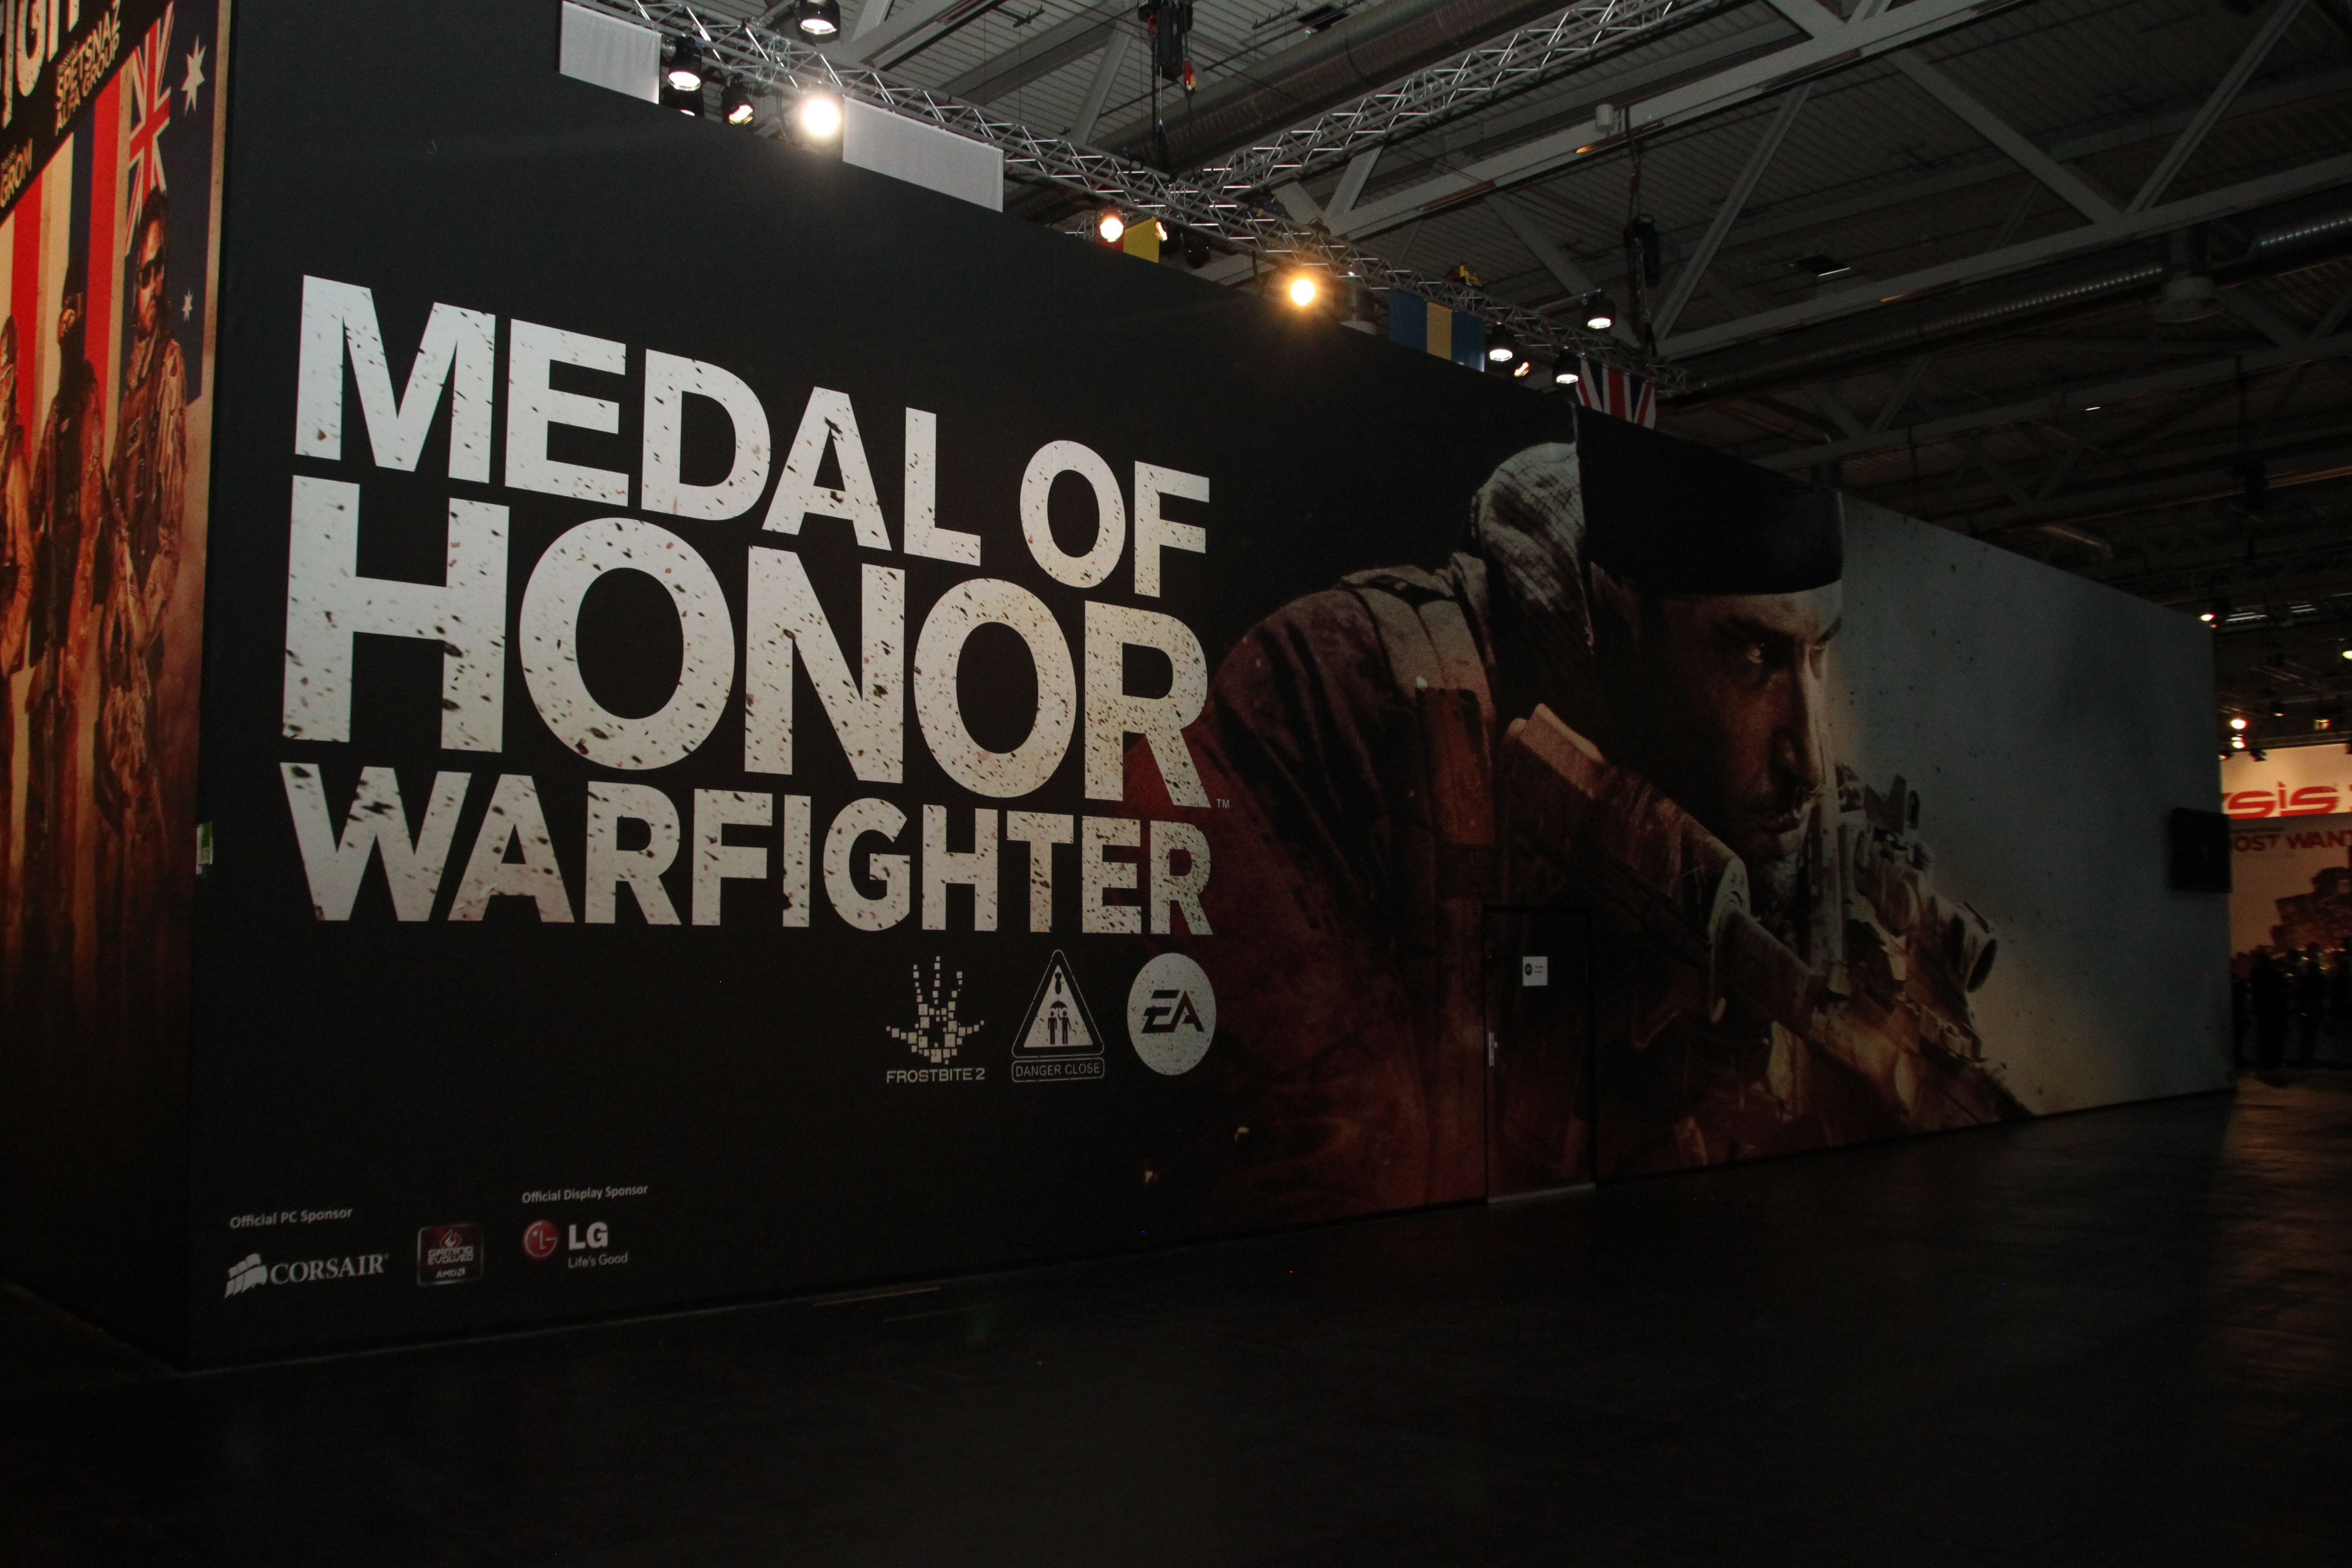 Medal of honor warfighter sequel